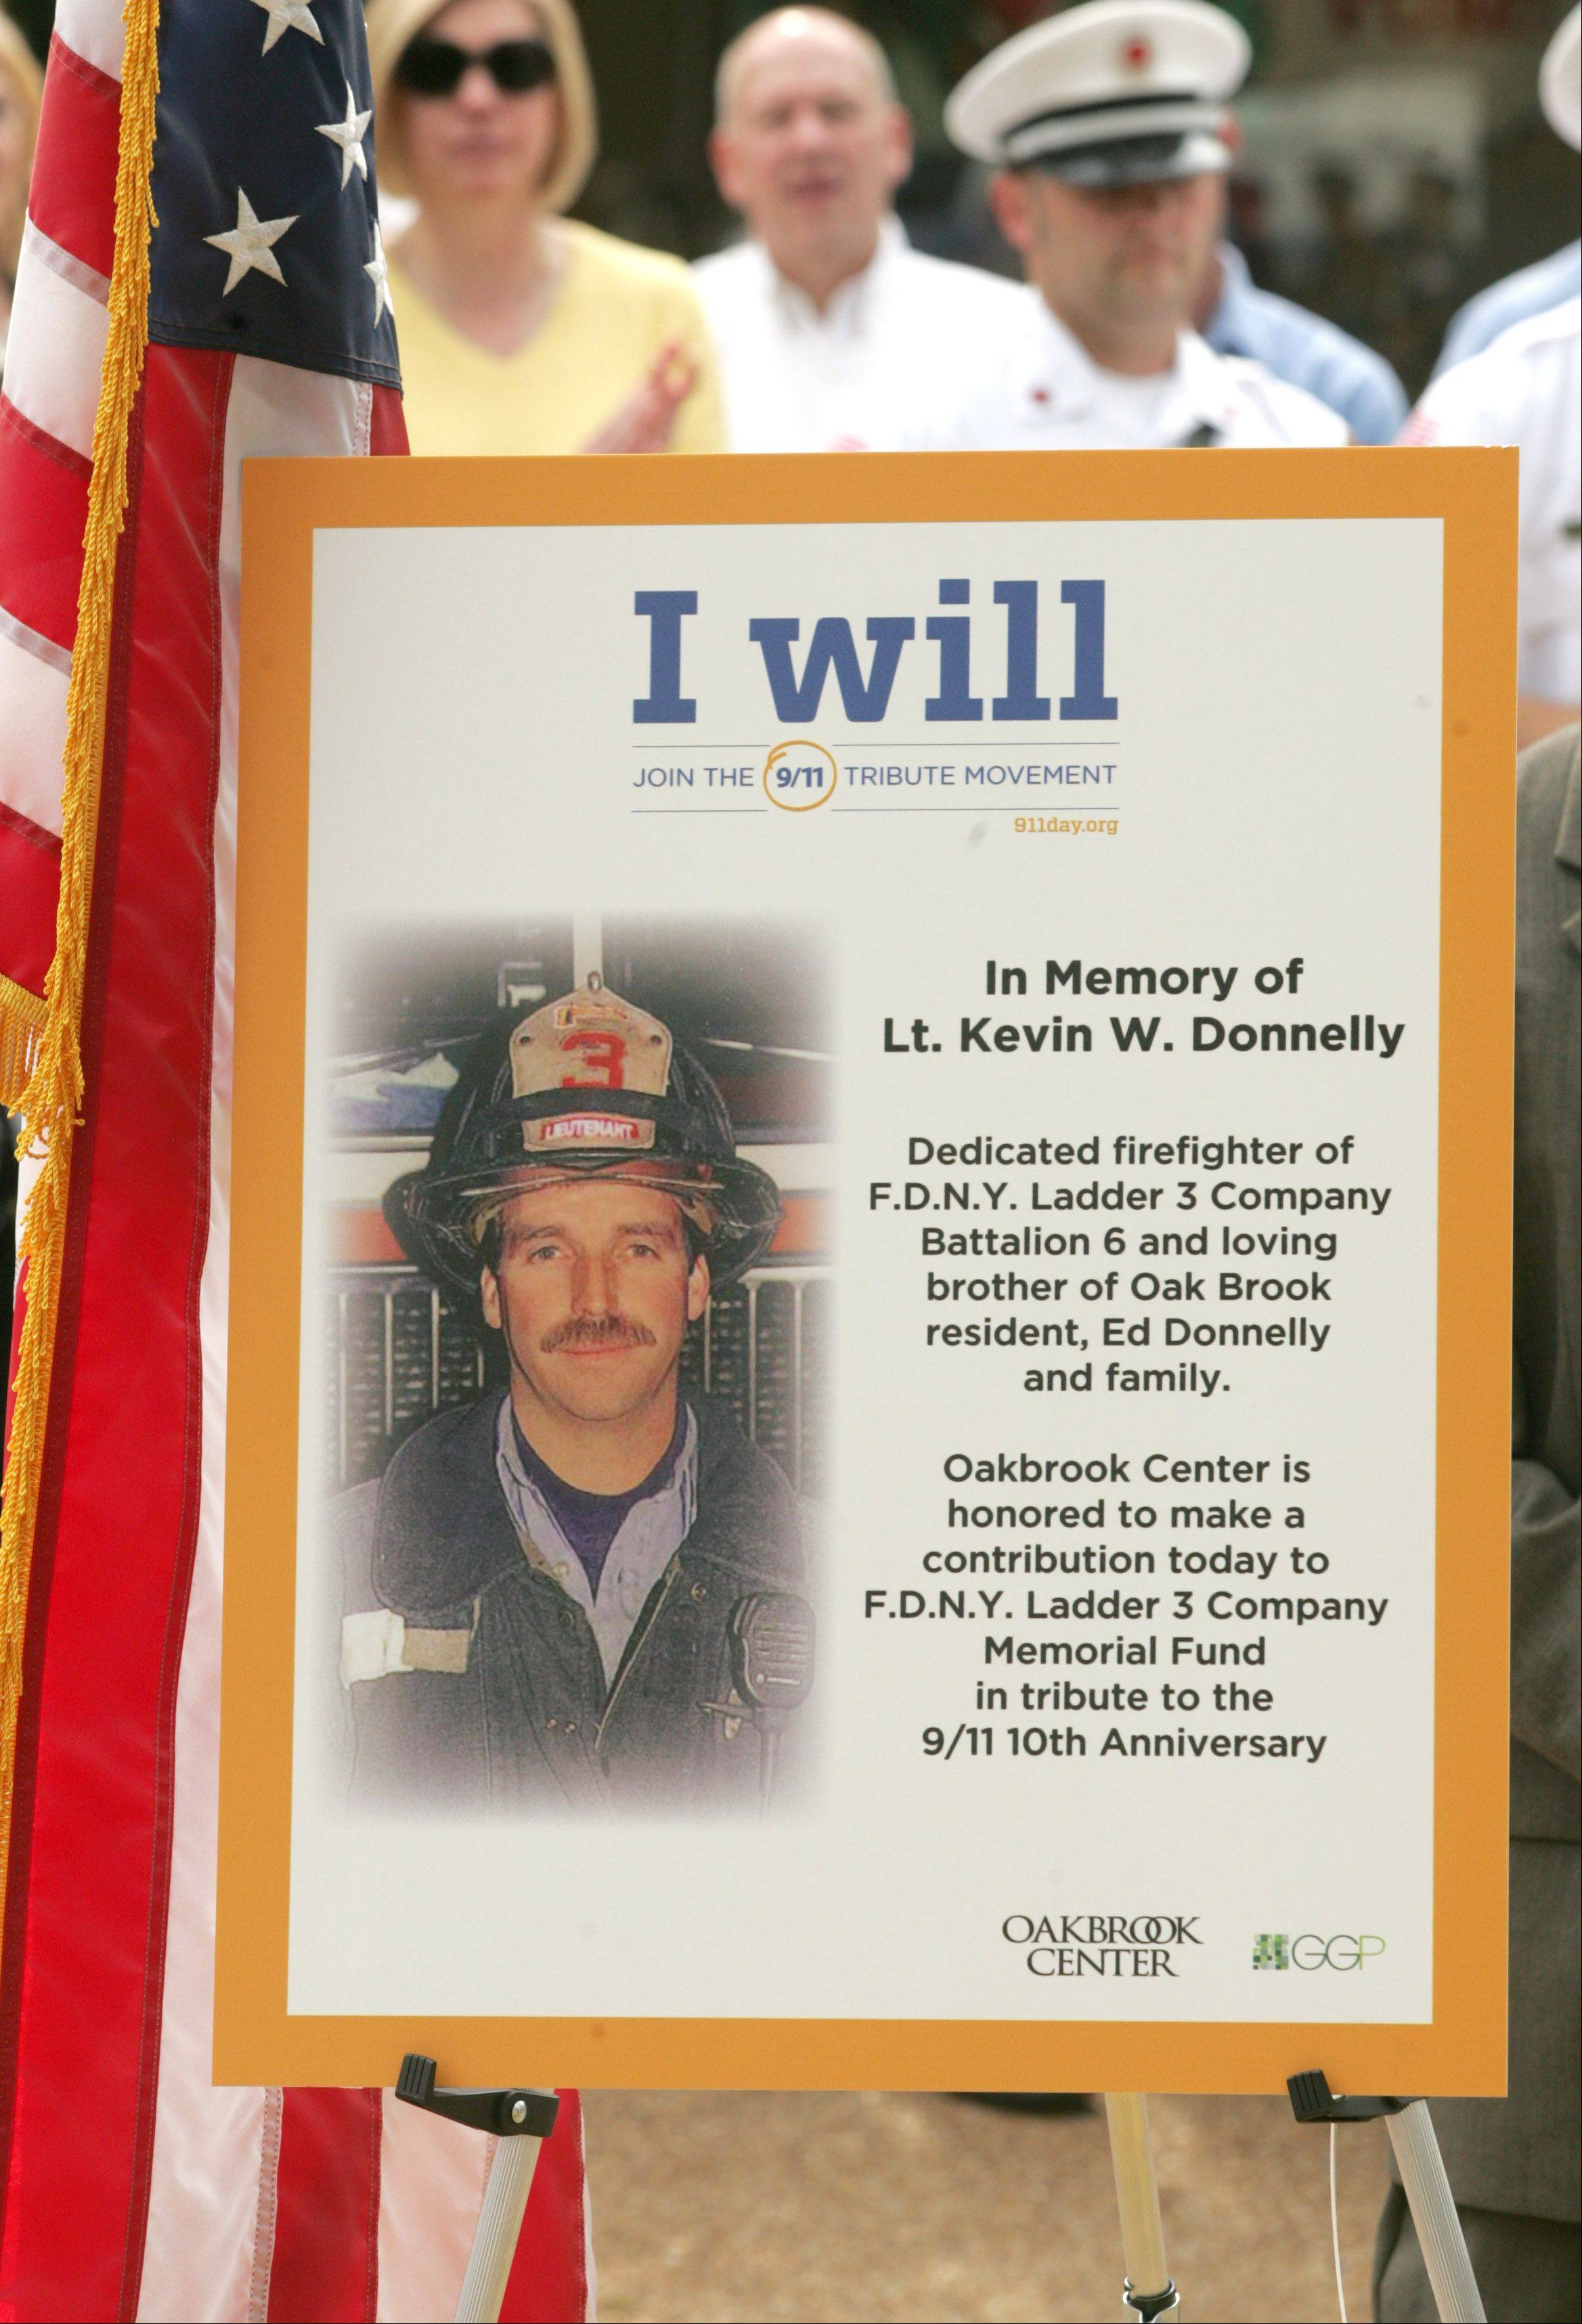 Lt. Kevin W. Donnelly was among the Ladder Company 3 firefighters killed while trying to rescue others from the World Trade Center.